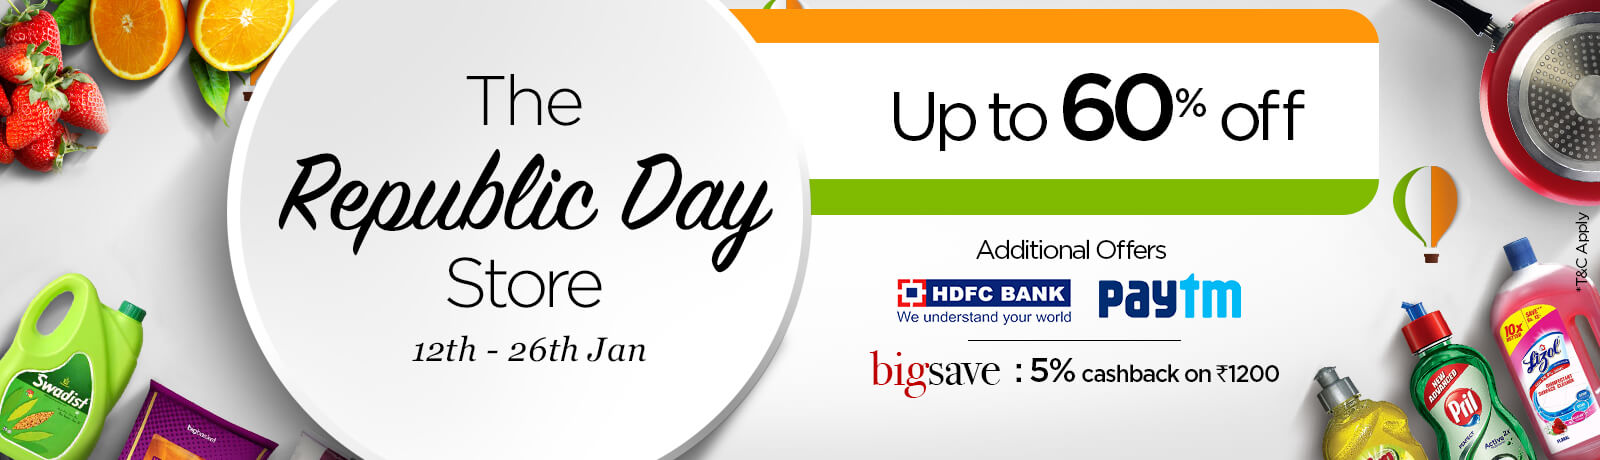 The Republic Day Store